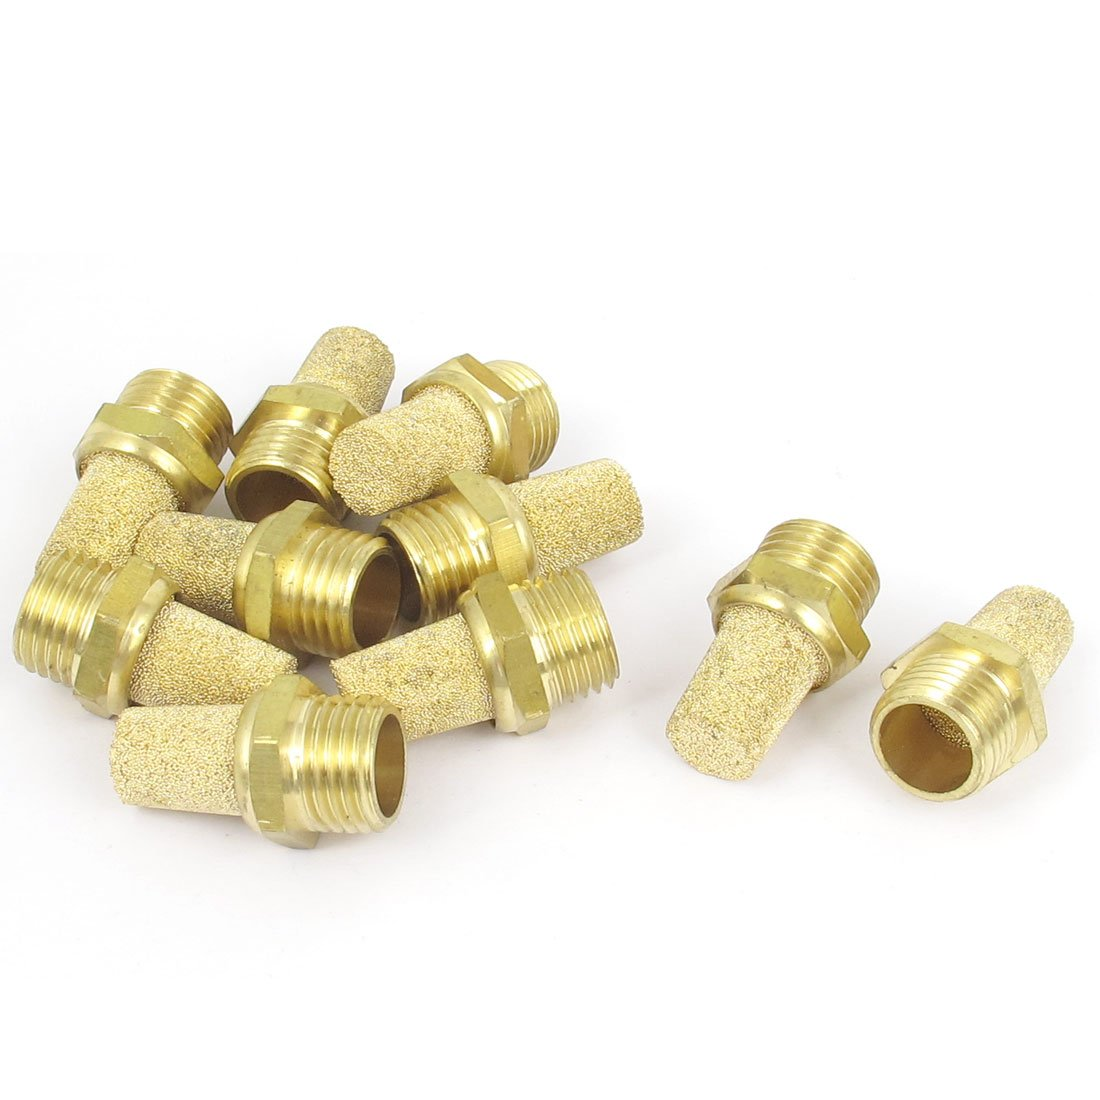 sourcingmap® 1/4BSP Male Thread Brass Pneumatic Exhaust Silencer Muffler 10pcs a15103000ux0408